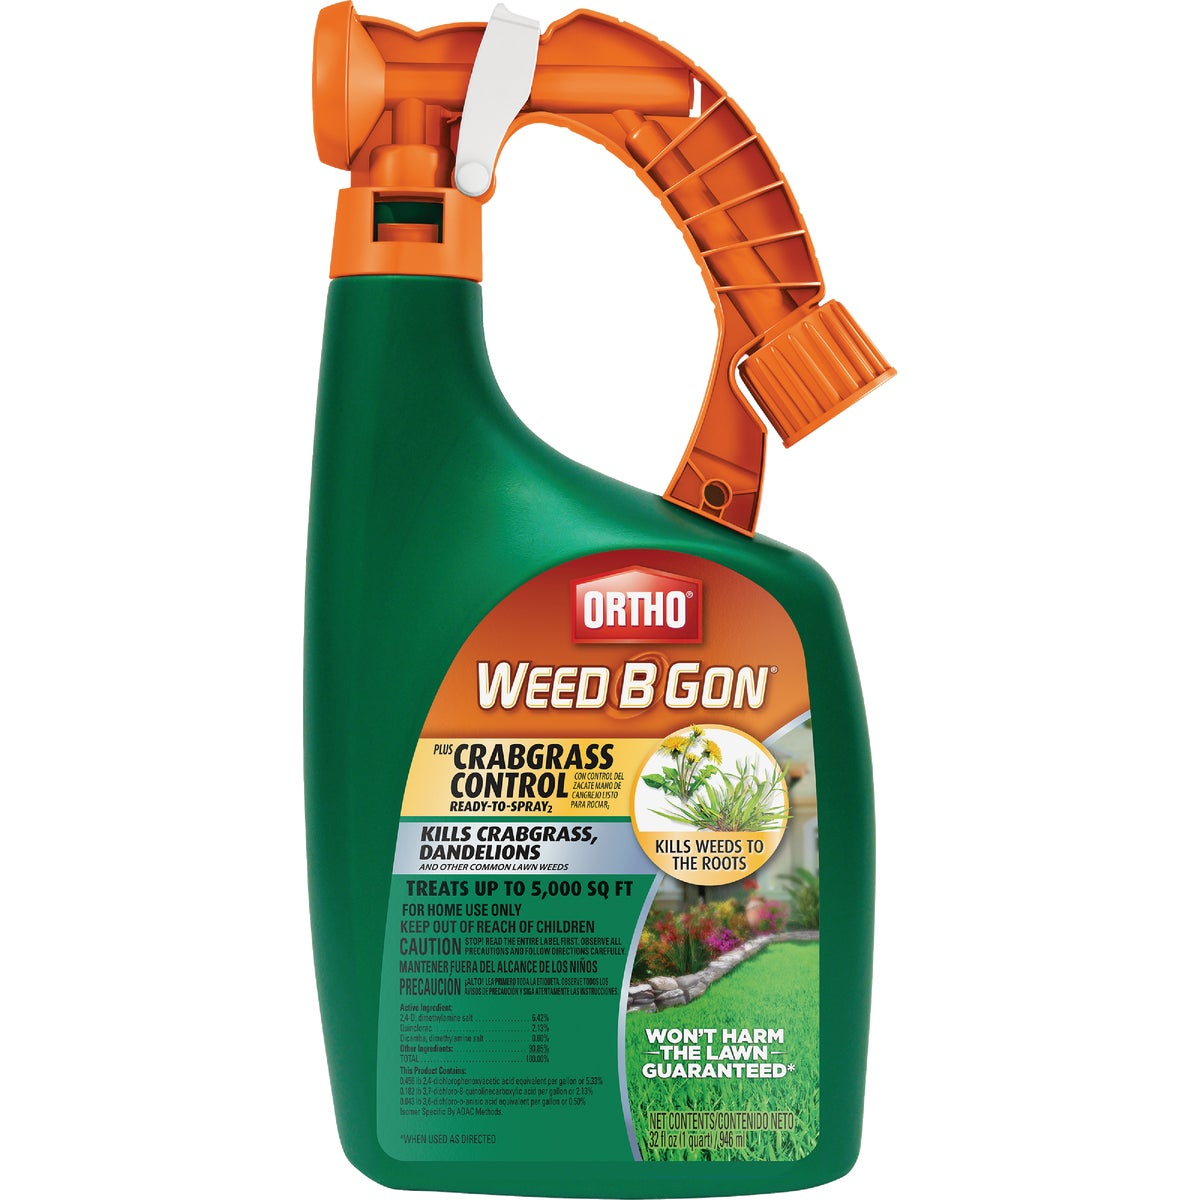 RTS WBG CRABGRASS KILLER - 9994110 by Scotts Company